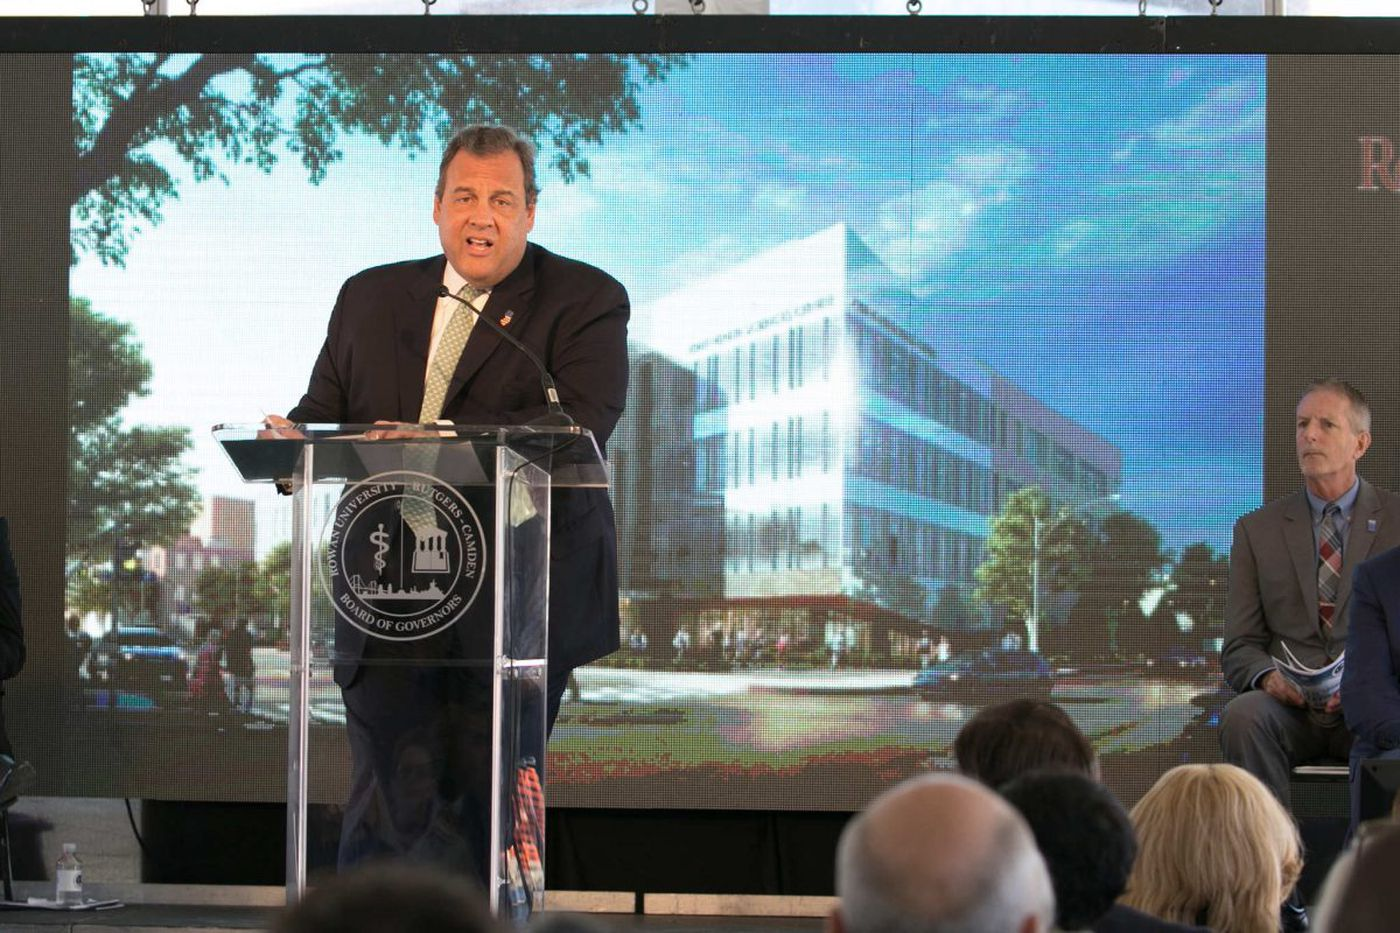 Christie and others celebrate a Camden project, but no one brings up the 'A' word